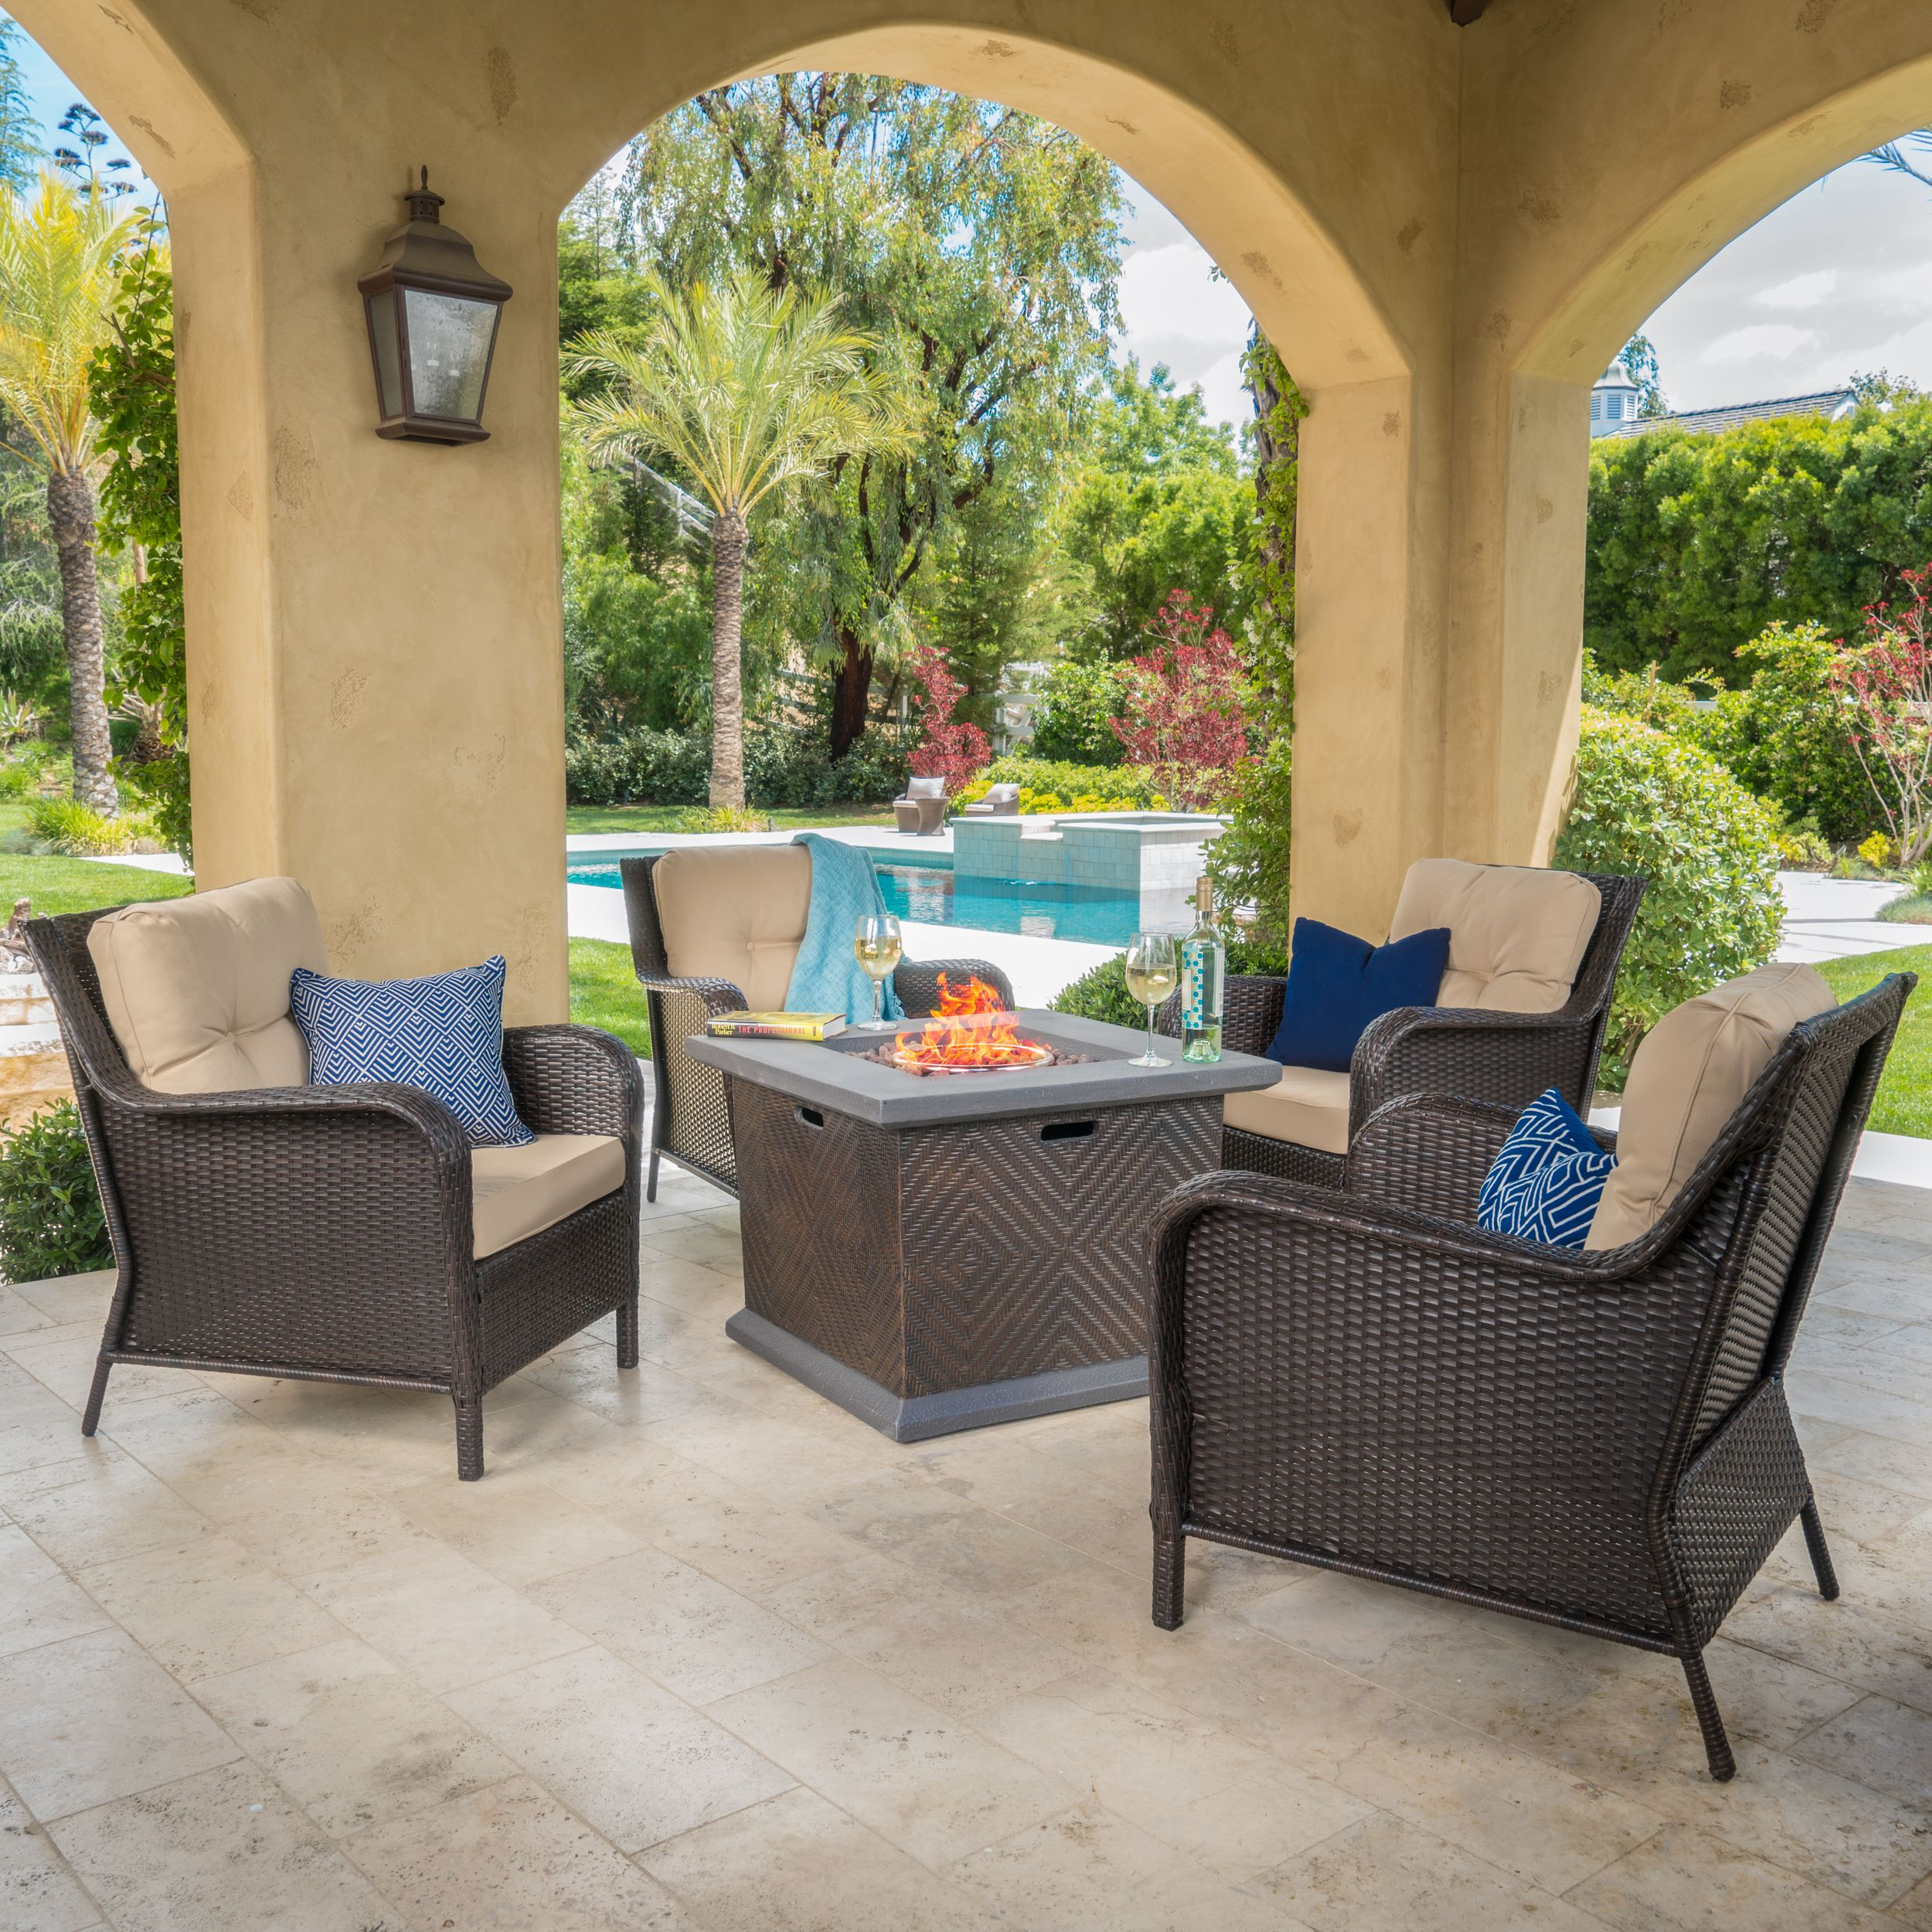 Malta 5 Piece Outdoor Club Chair and Square Fire Pit Conversation Set with Cushions, Dark Brown, Tan